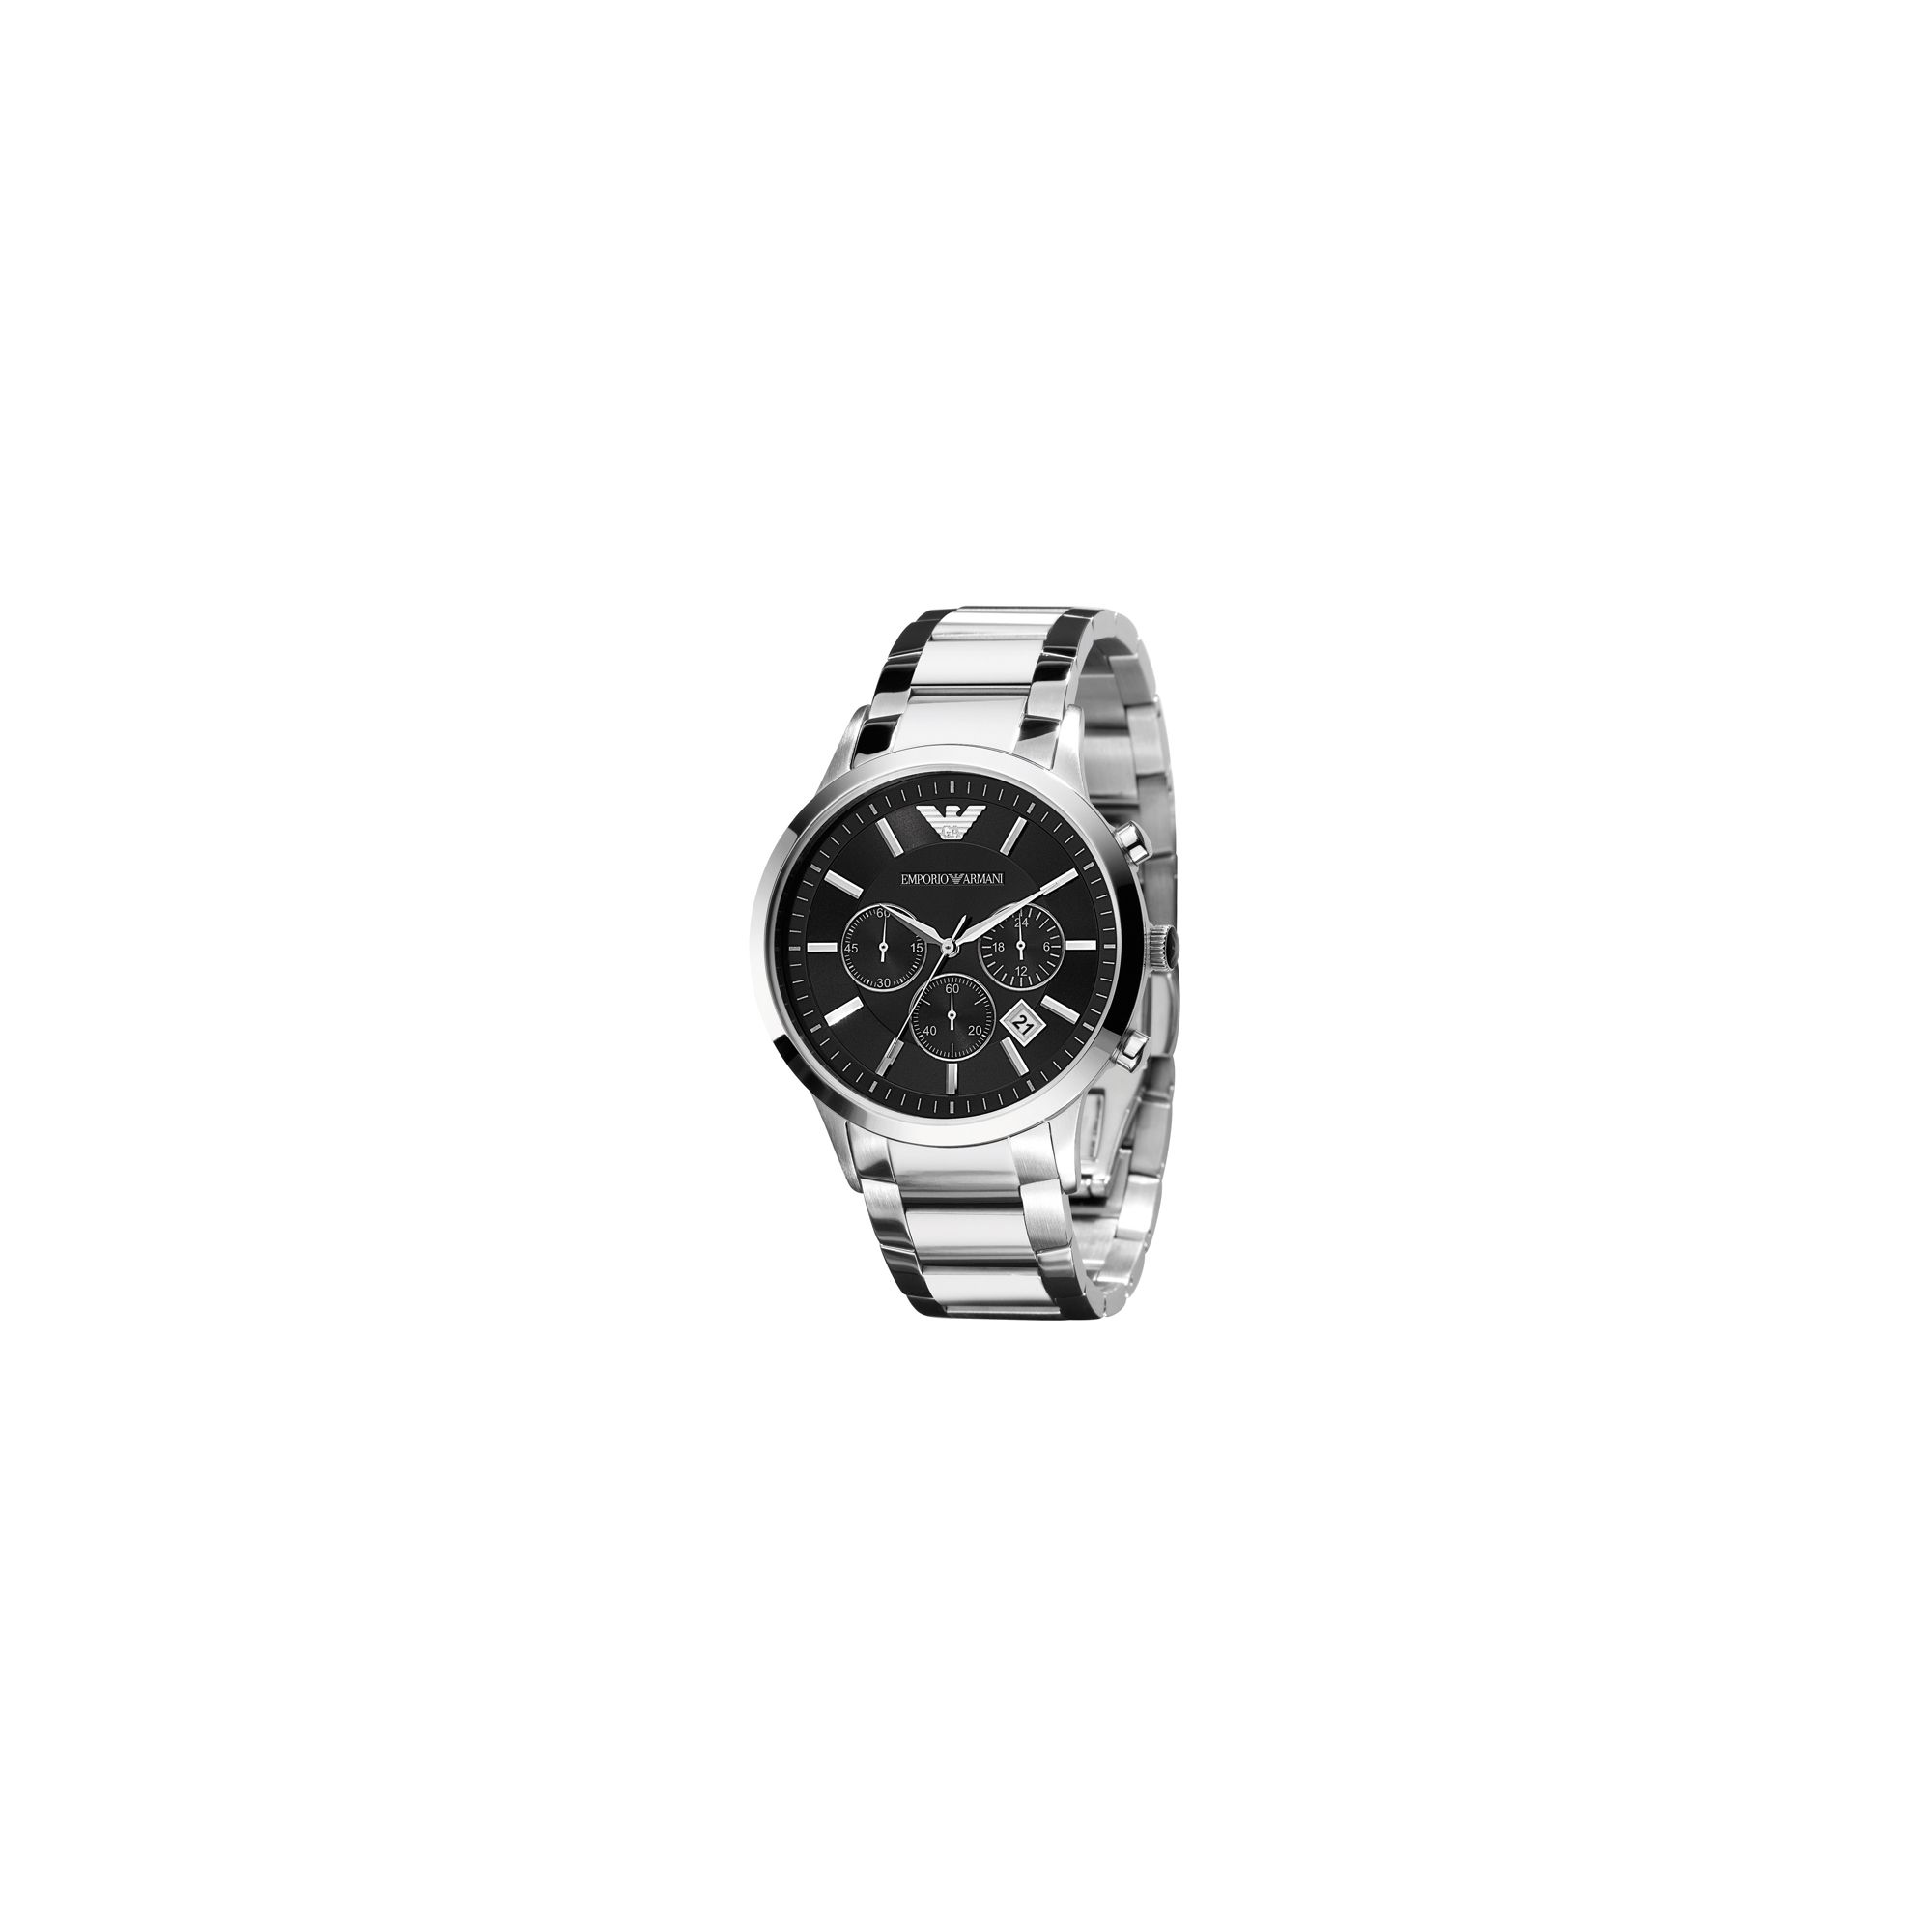 Emporio Armani Chrono Watch AR2434 at Tesco Direct